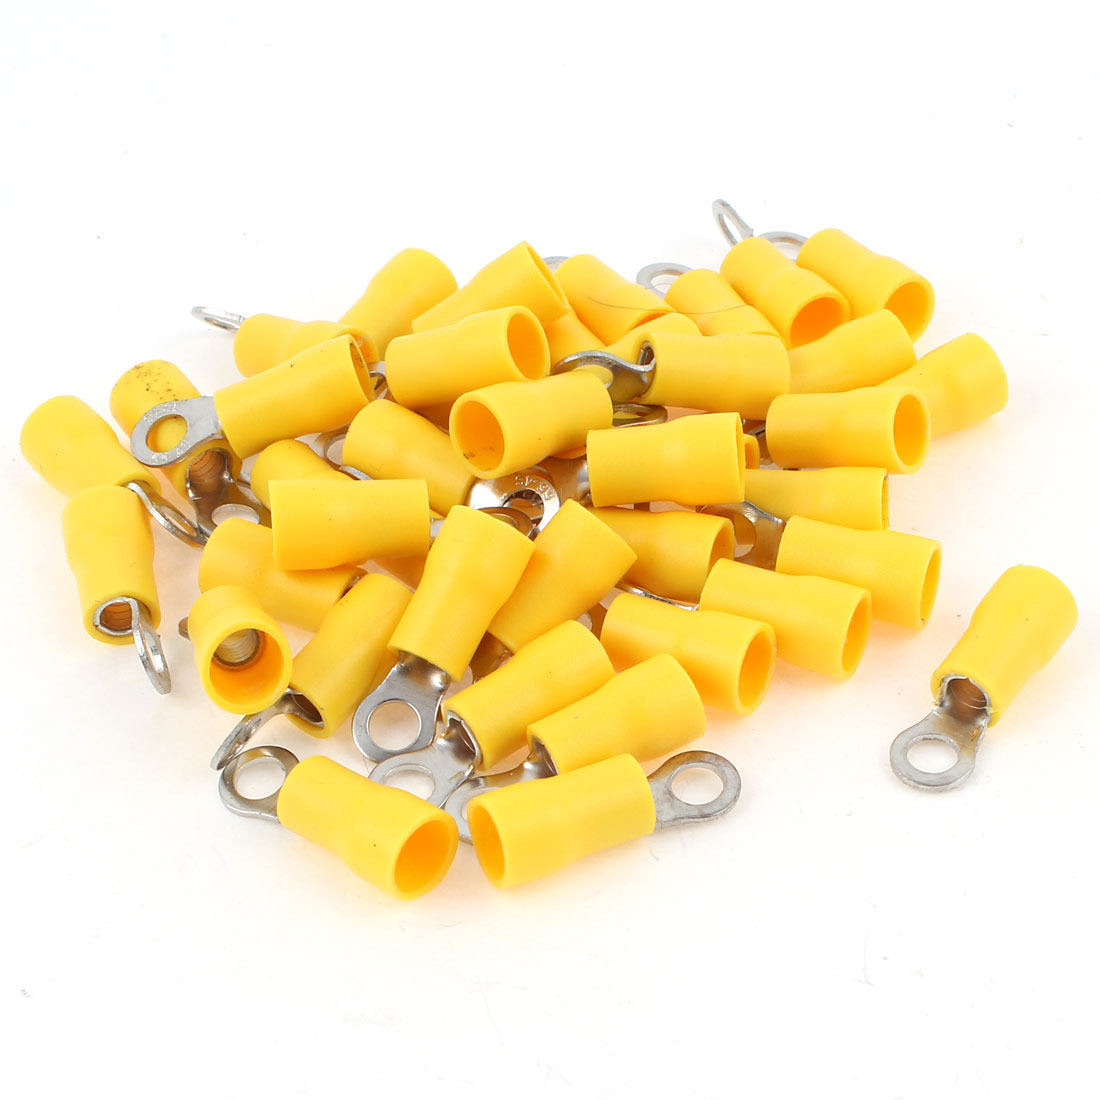 40PCS RV5.5-4 AWG12-10 Electric Wring Ring Yellow Insulating Crimp Terminals